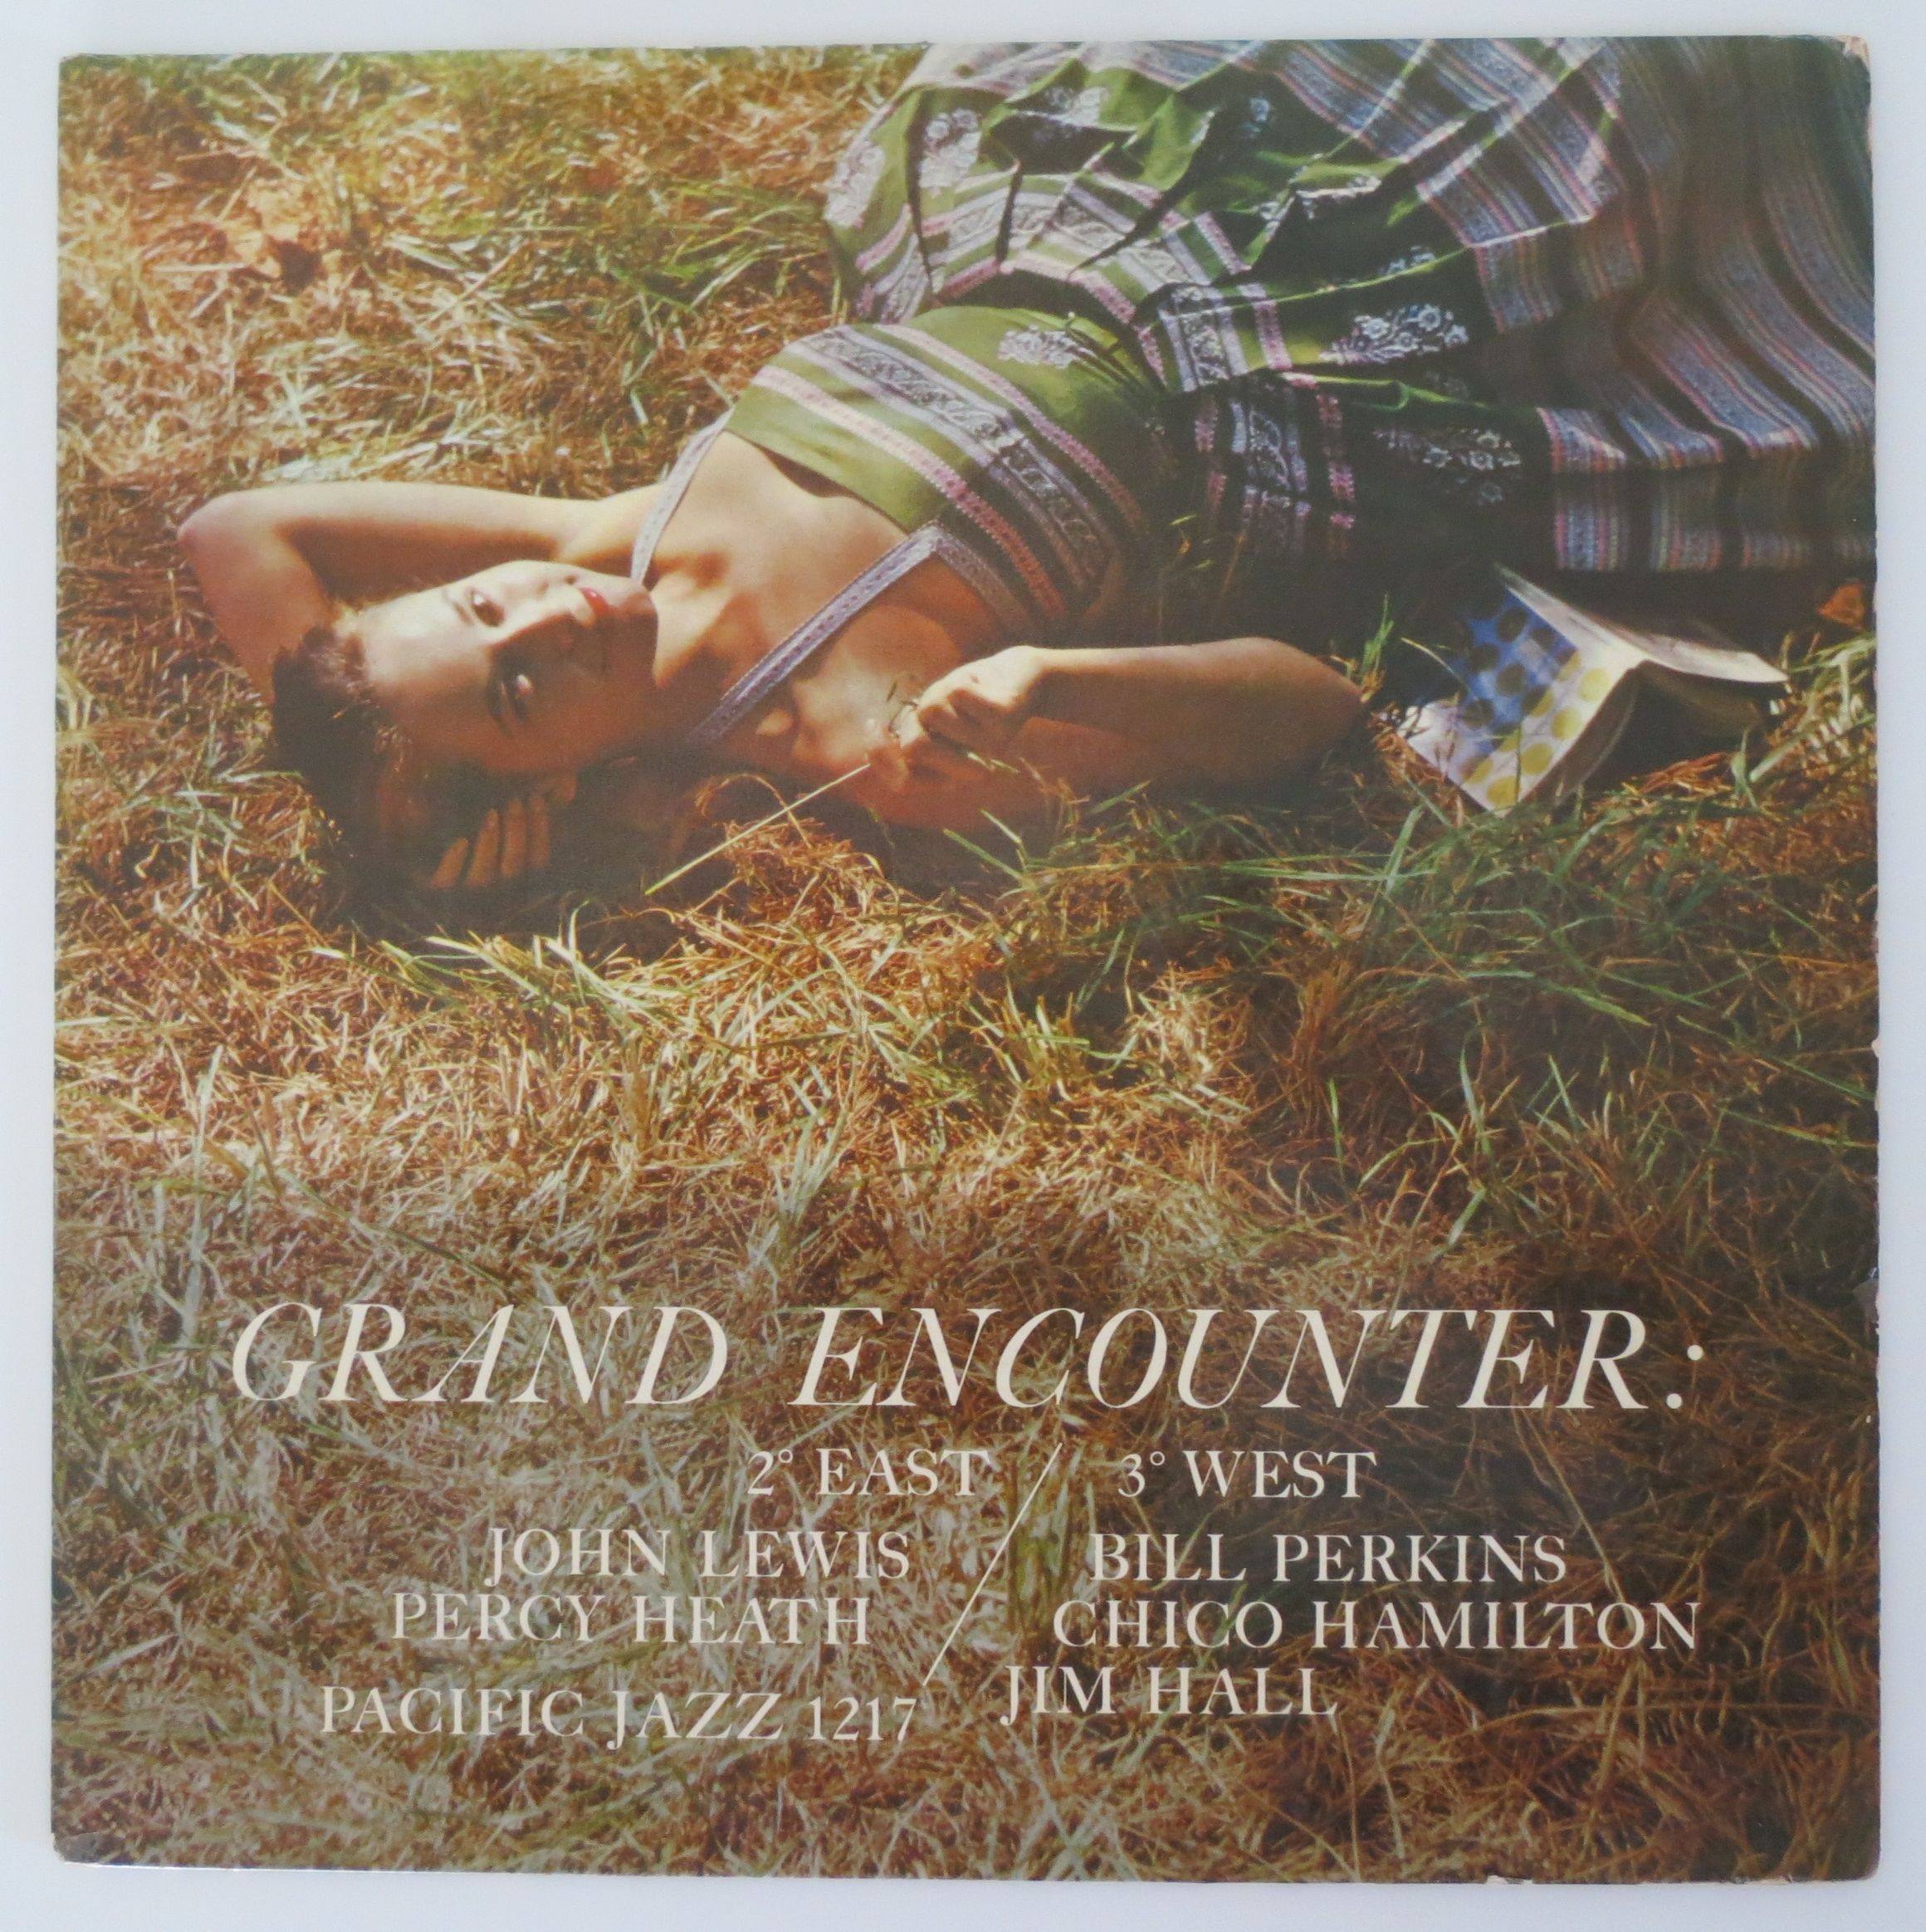 John Lewis ?- Grand Encounter: 2 Degrees East - 3 Degrees West(Pacific Jazz Records ?- PJ-1217)mono